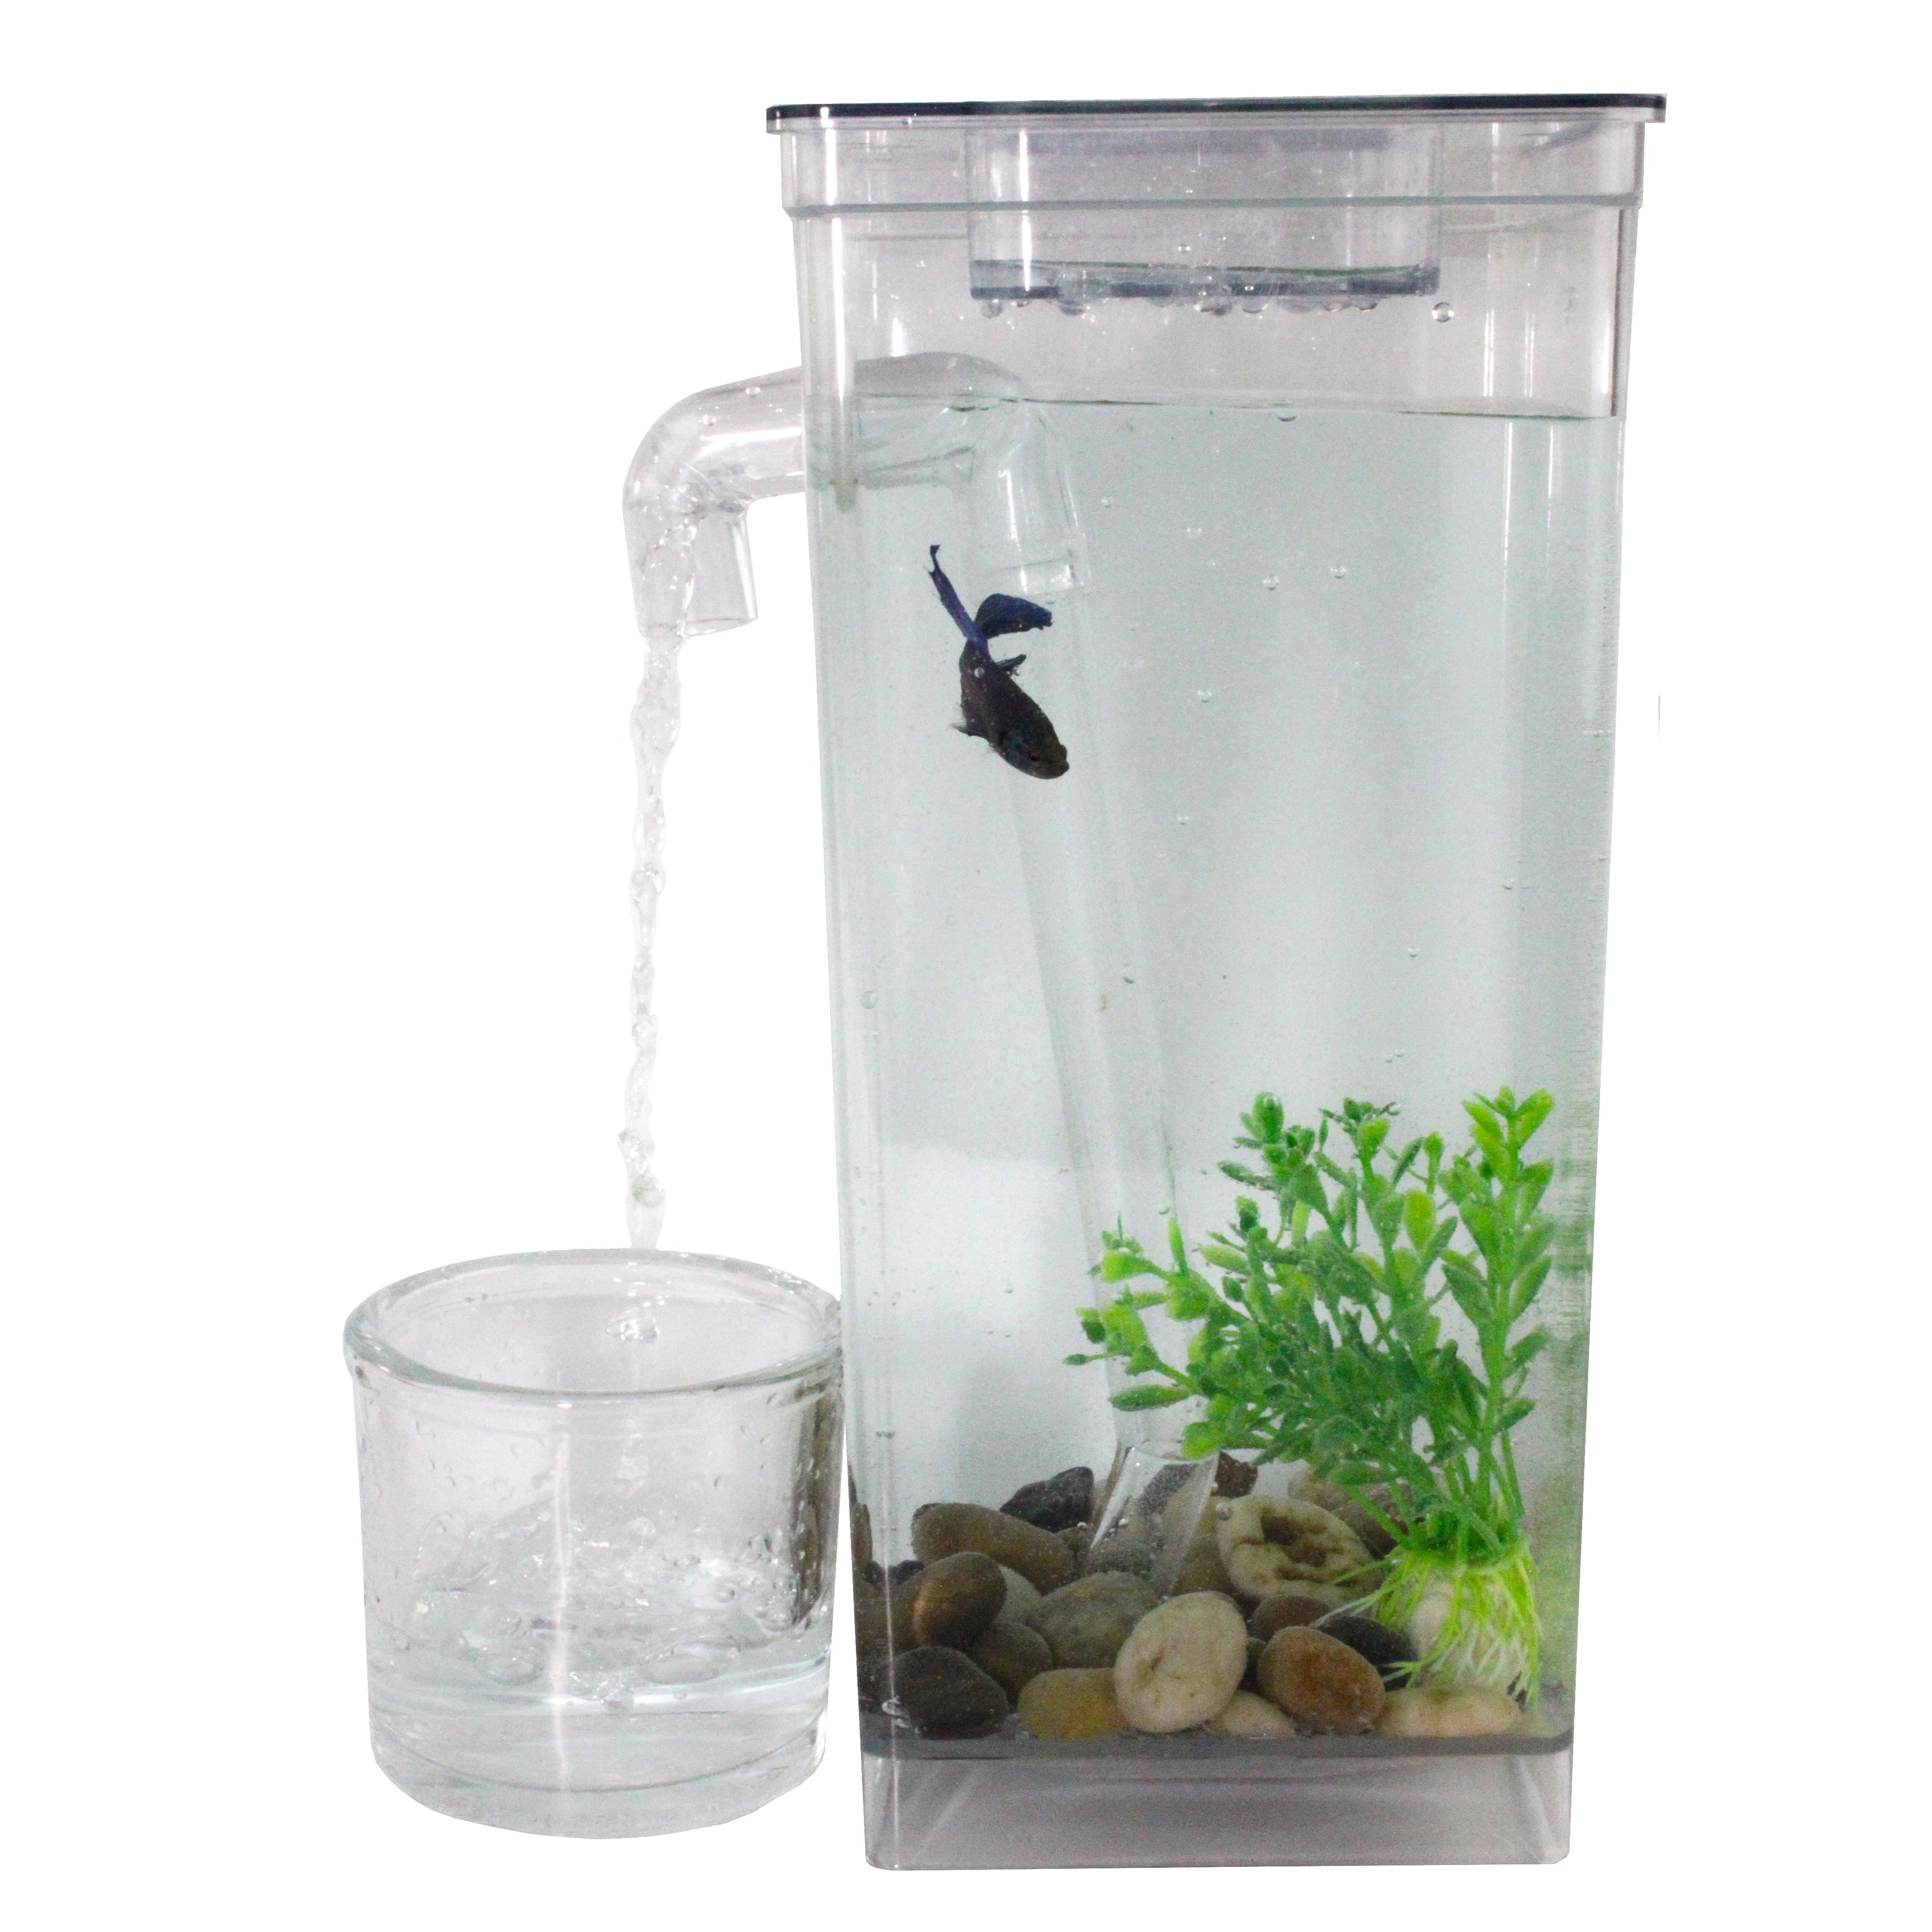 As Seen On TV Self-cleaning Fish Tank (Self Cleaning Fish...